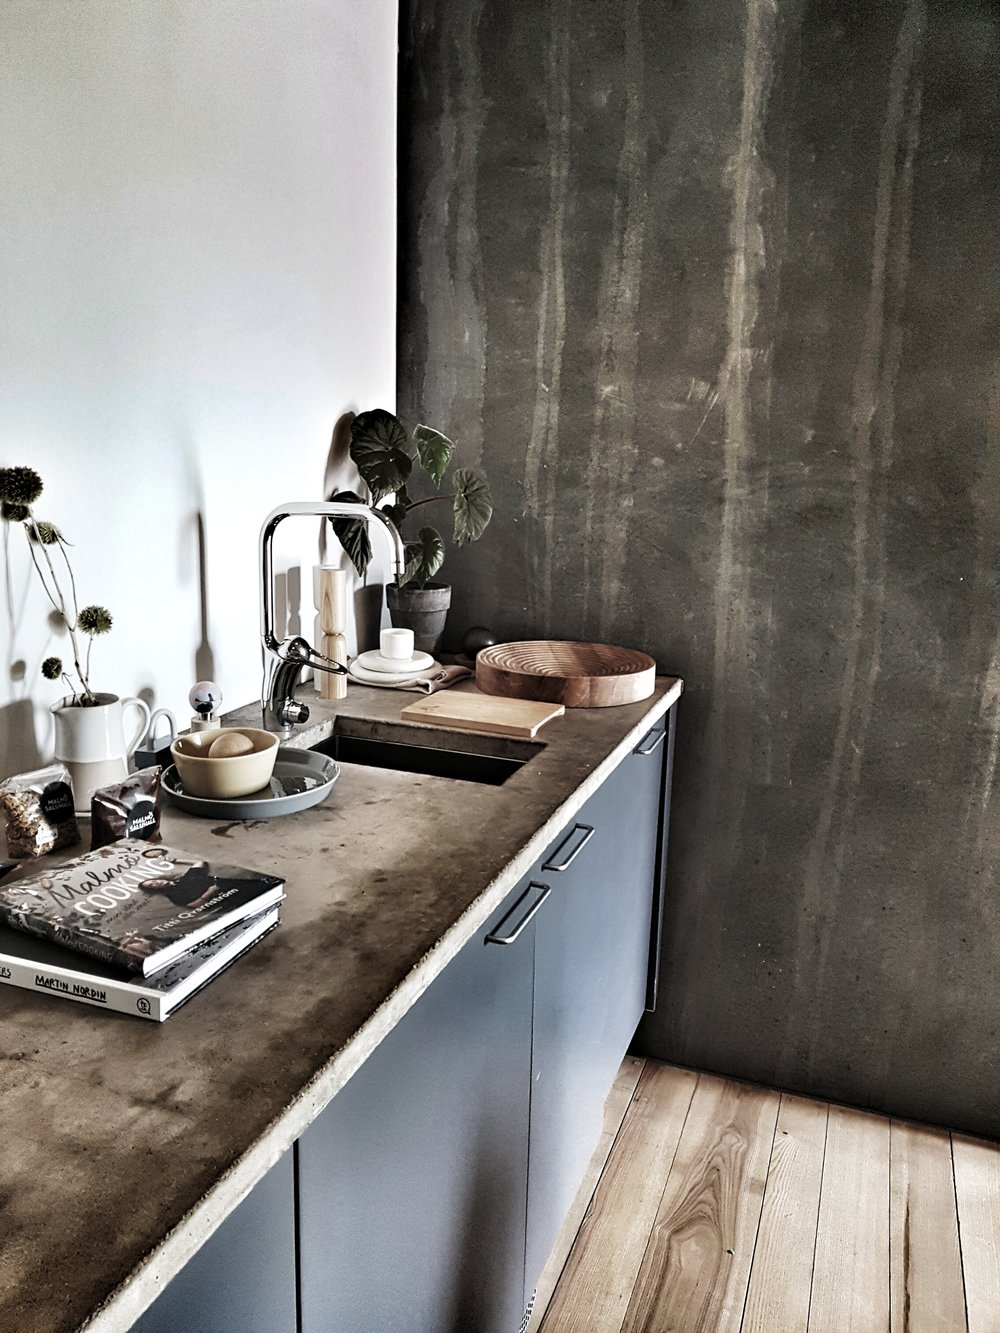 The kitchenette at the Ohboy had gorgeous concrete worktops